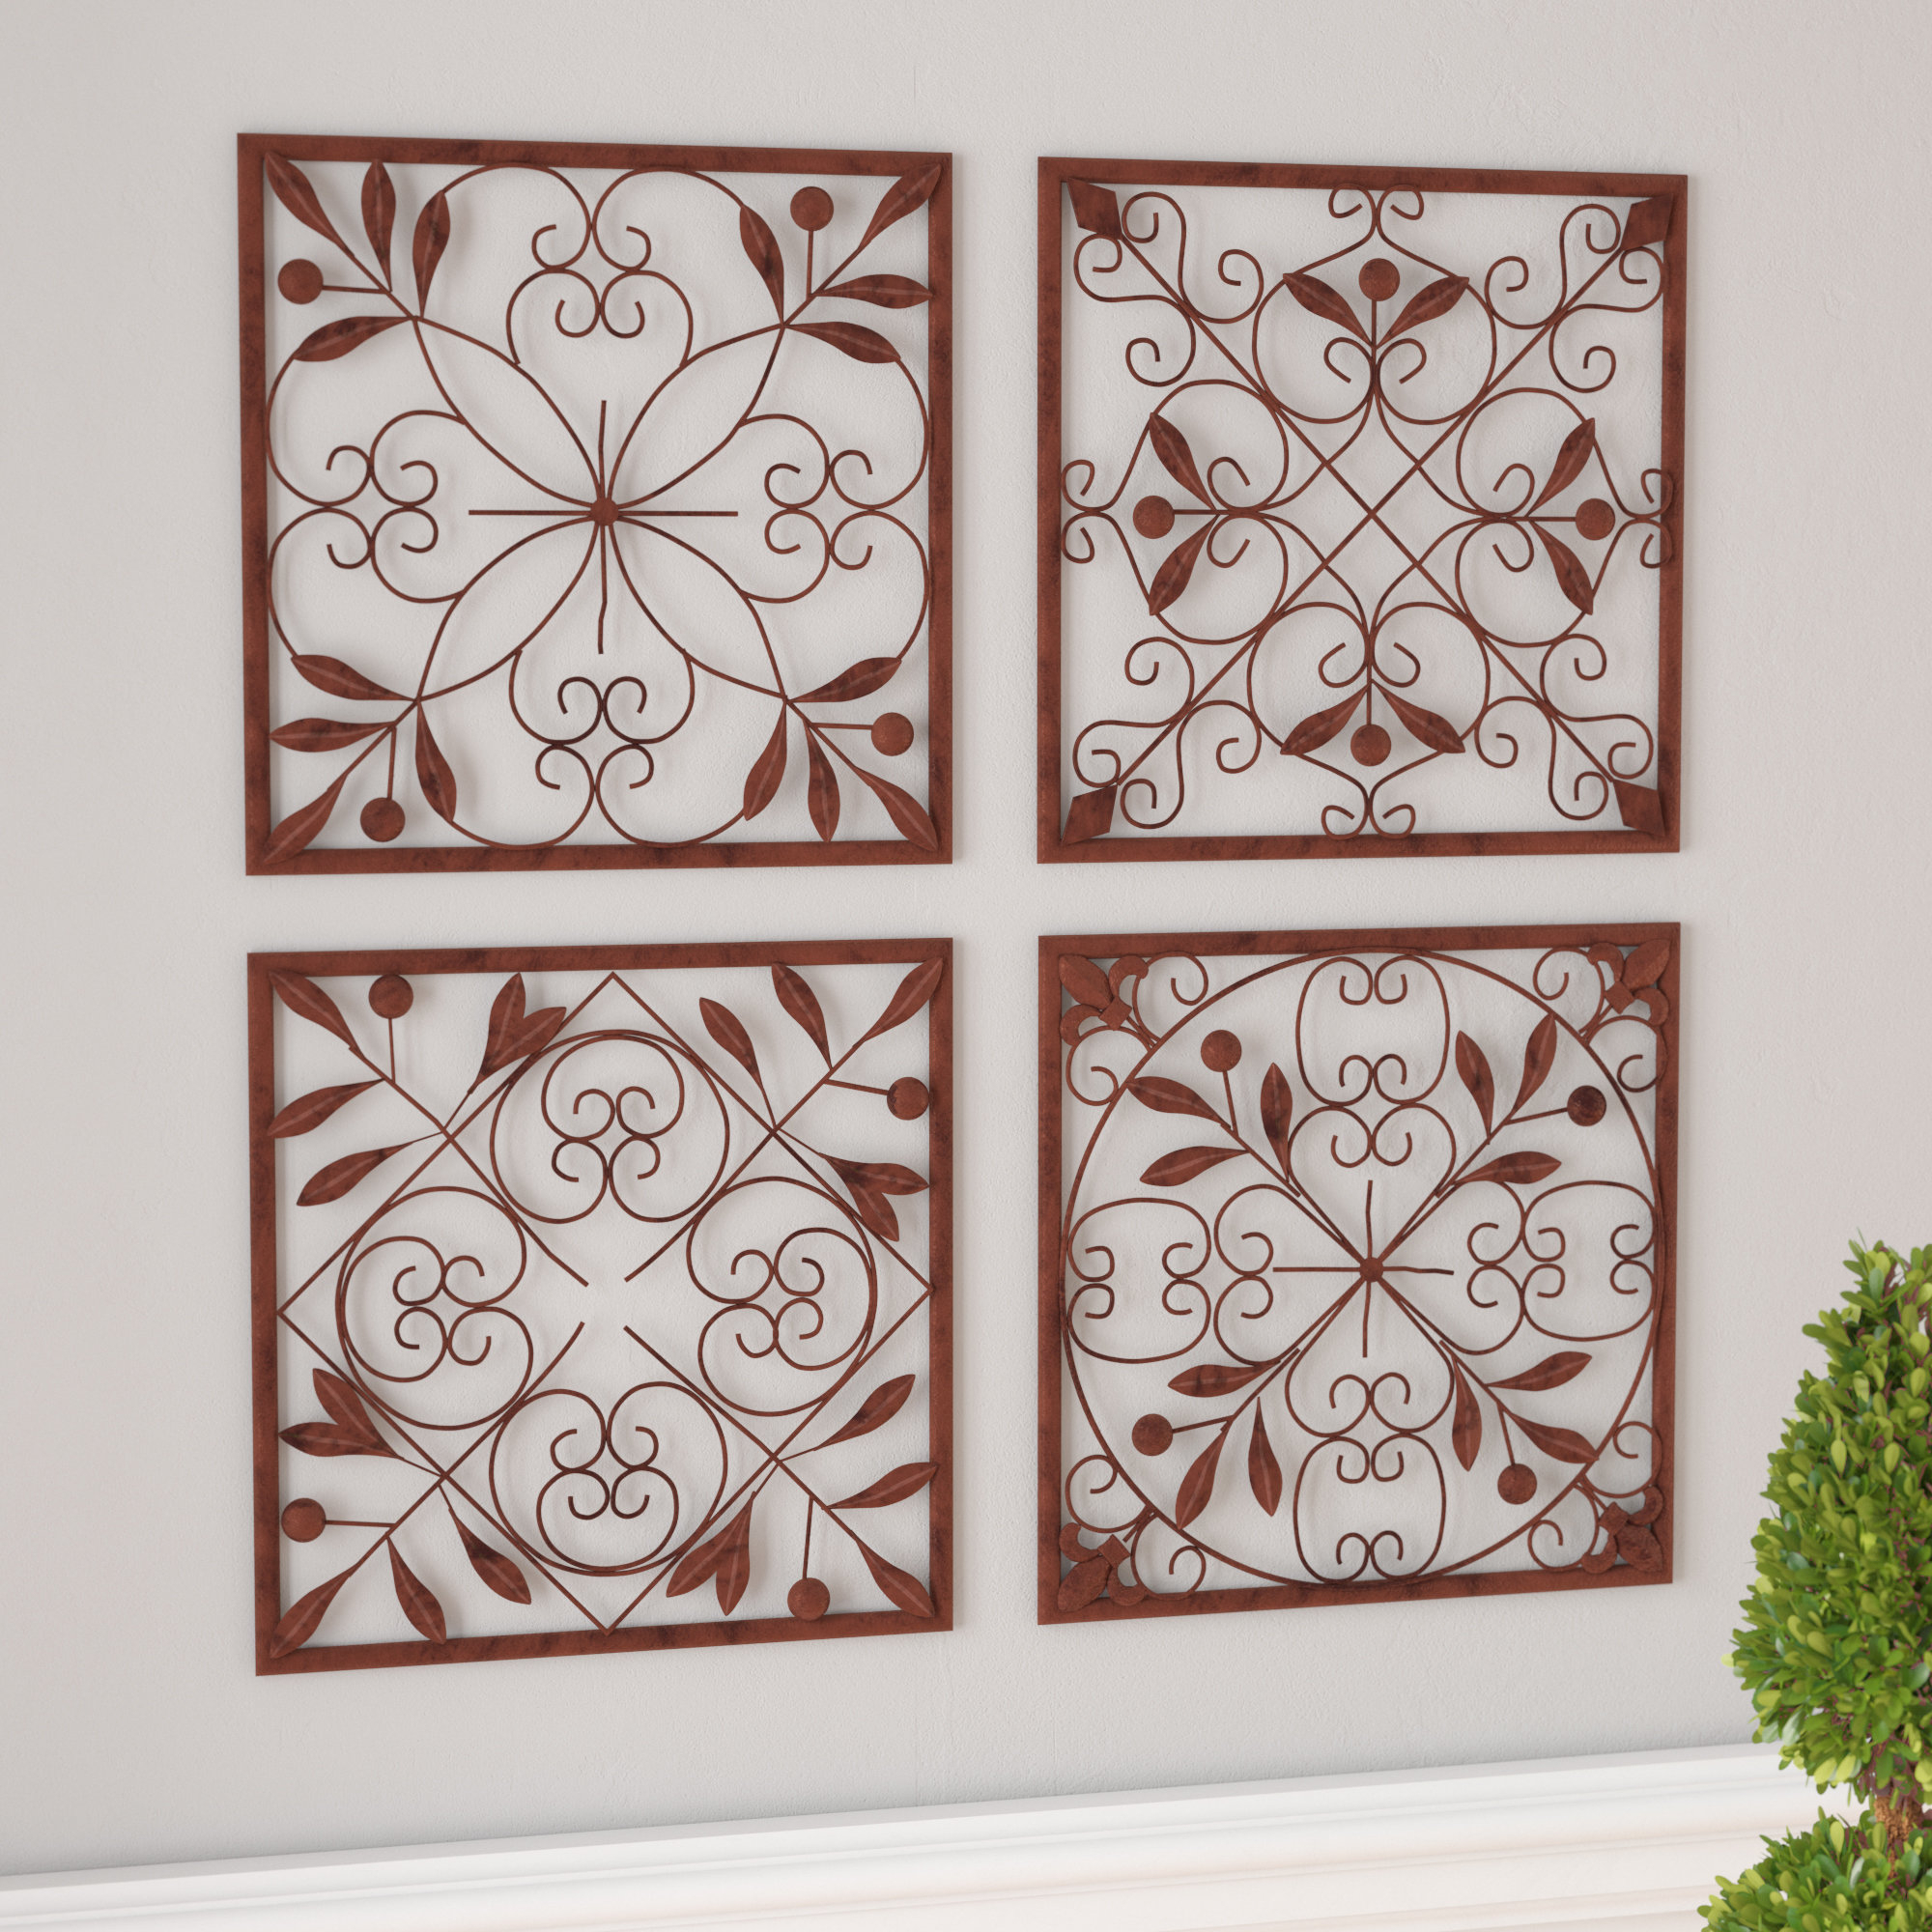 Wayfair Intended For Favorite 1 Piece Ortie Panel Wall Decor (View 17 of 20)